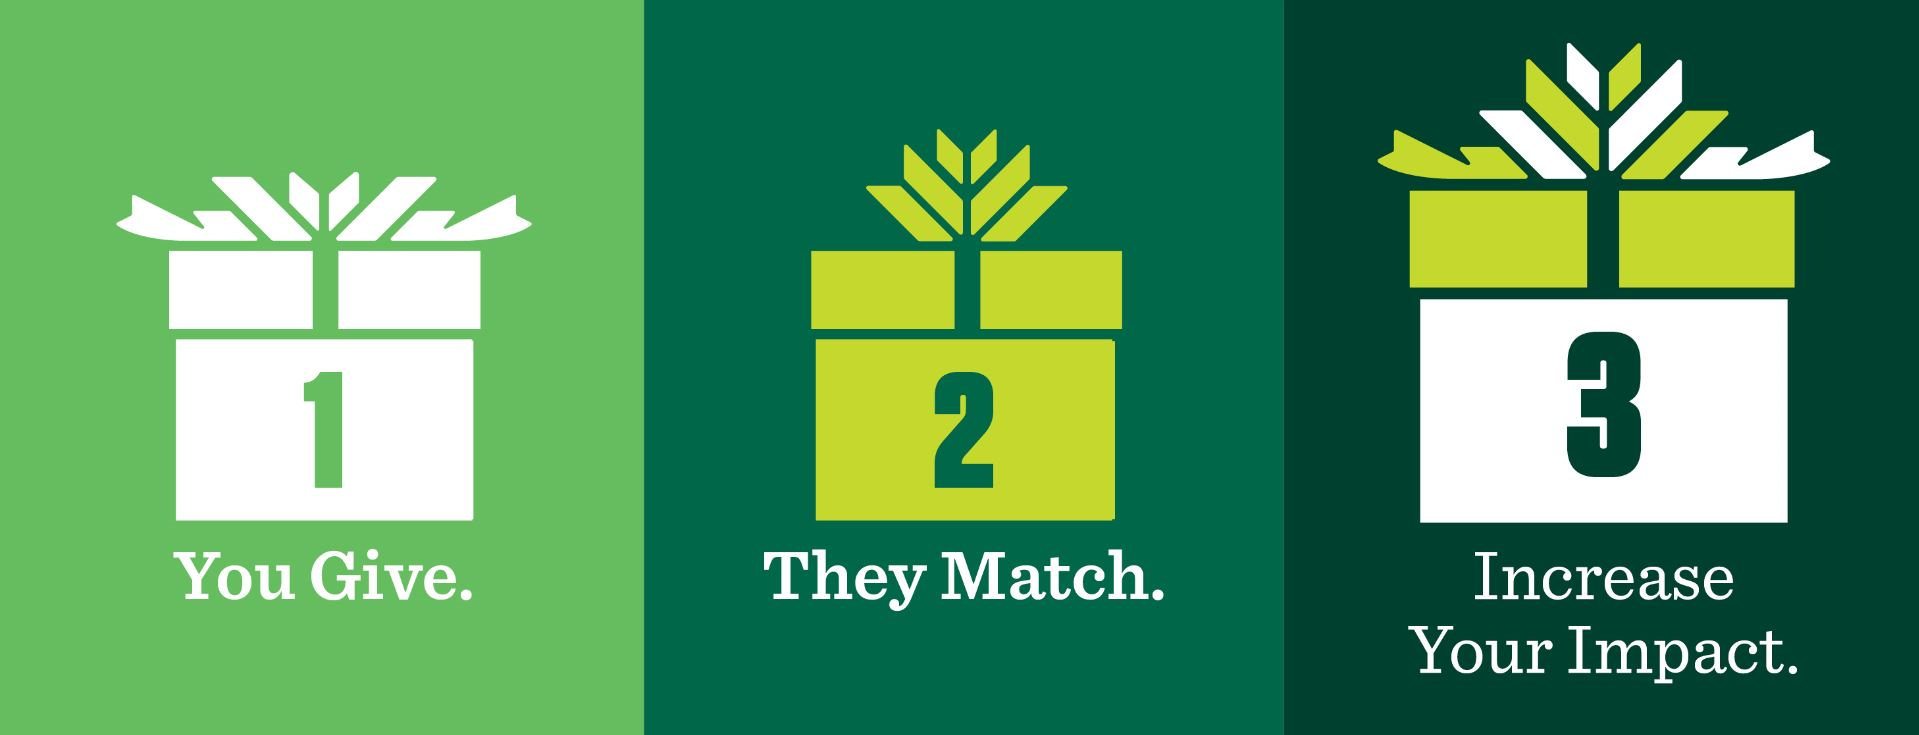 matching gifts increases donor impact